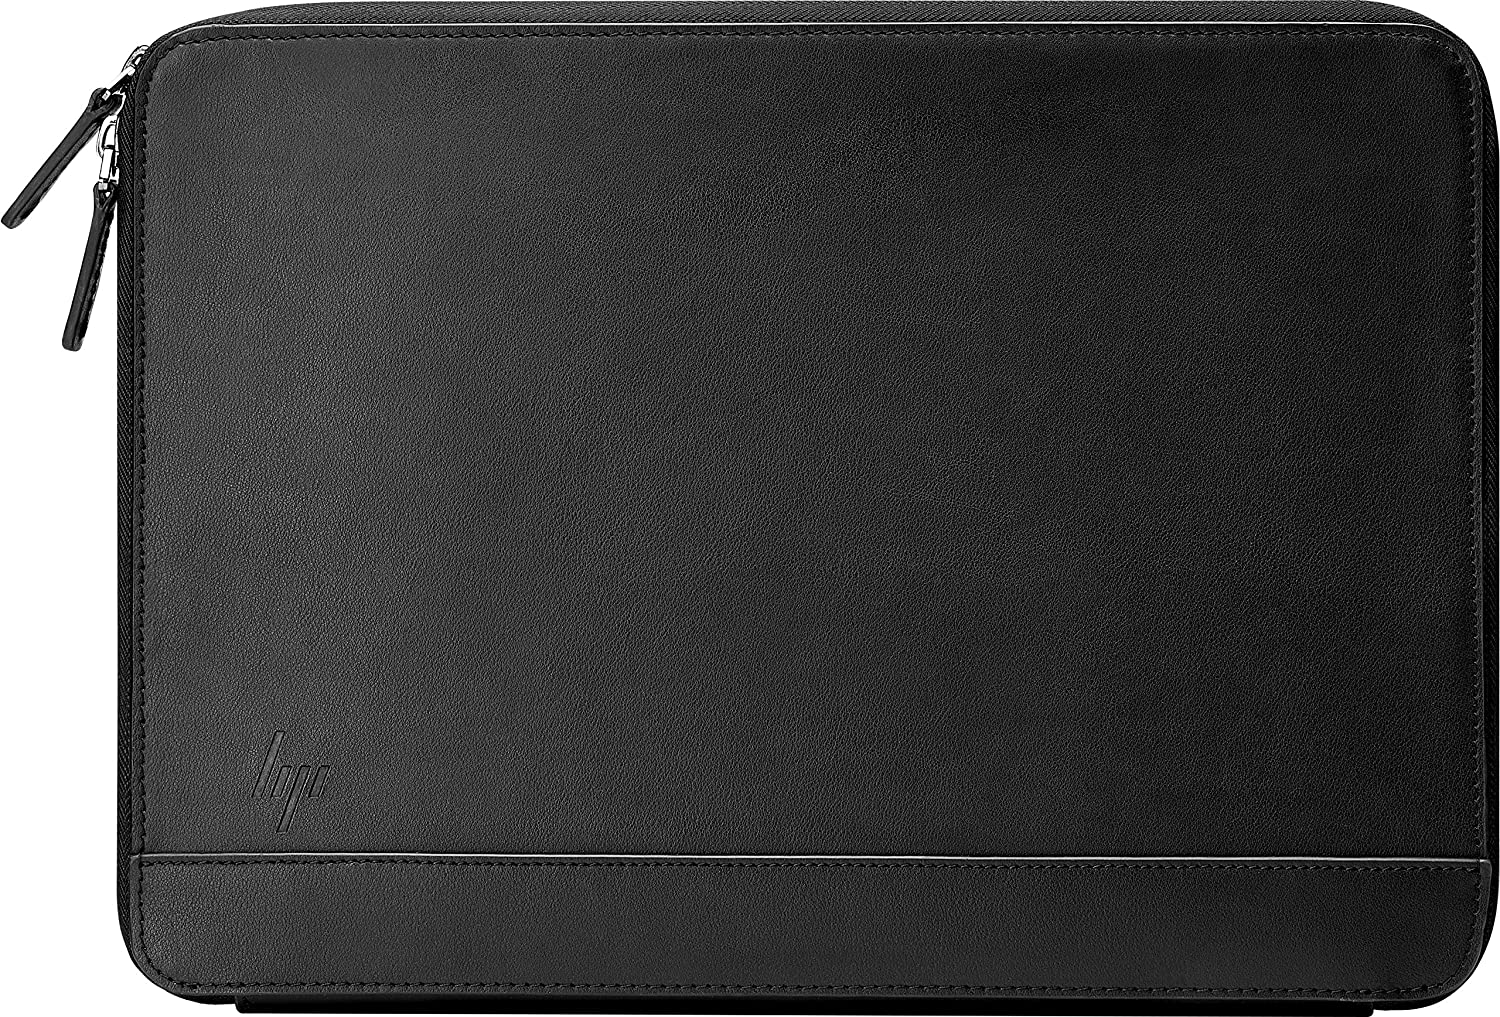 "HP Elite Notebook Portfolio Case for Laptops up to 14"" Black"